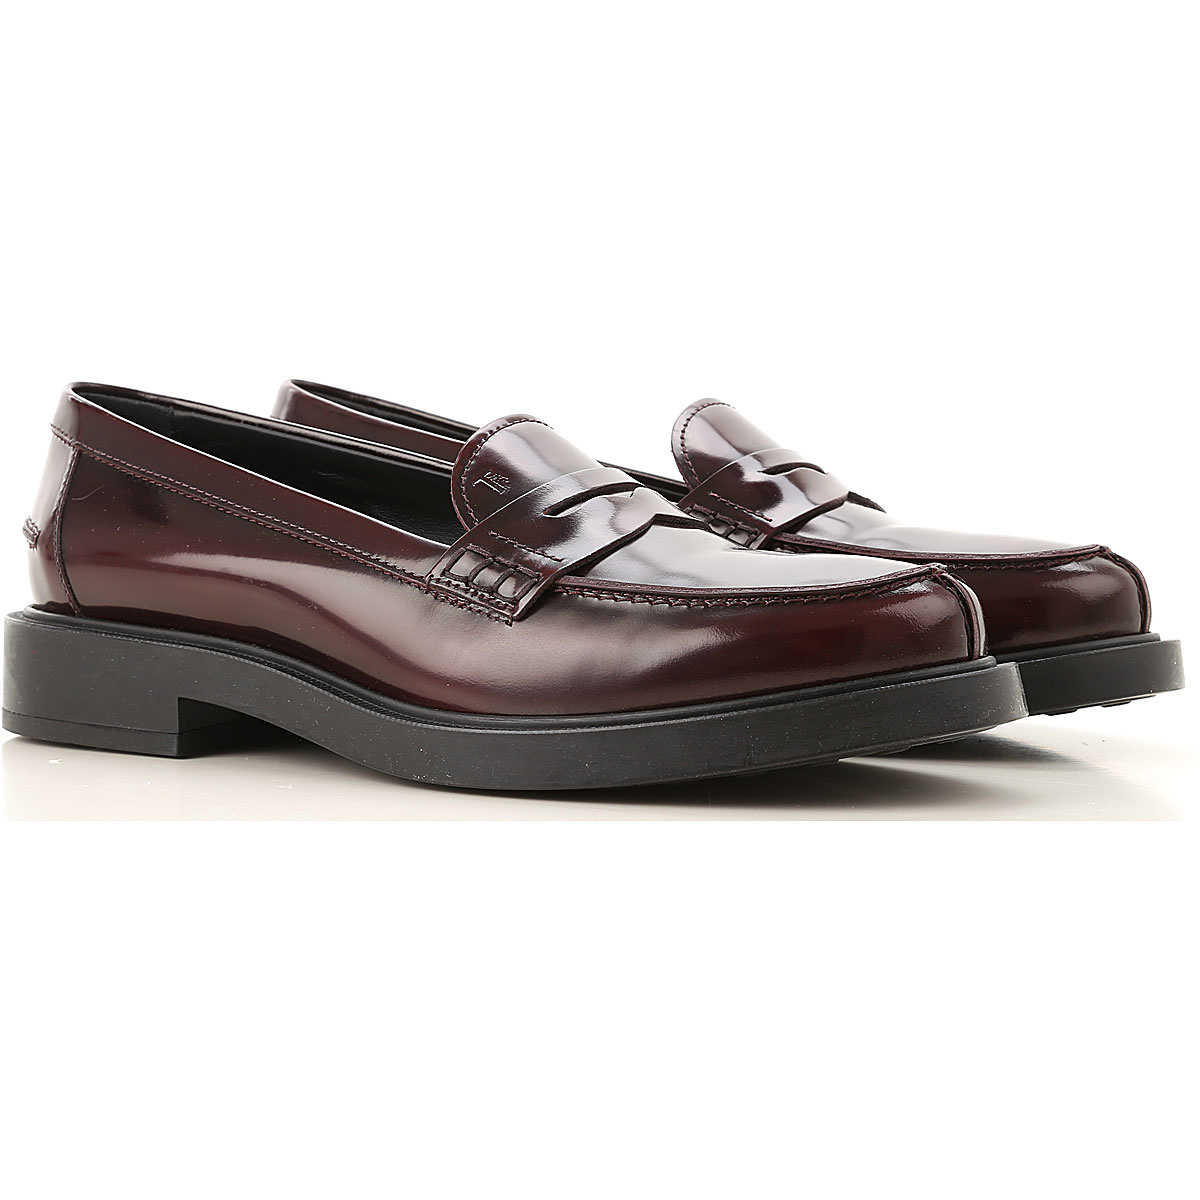 Tods Loafers for Women On Sale Bordeaux UK - GOOFASH